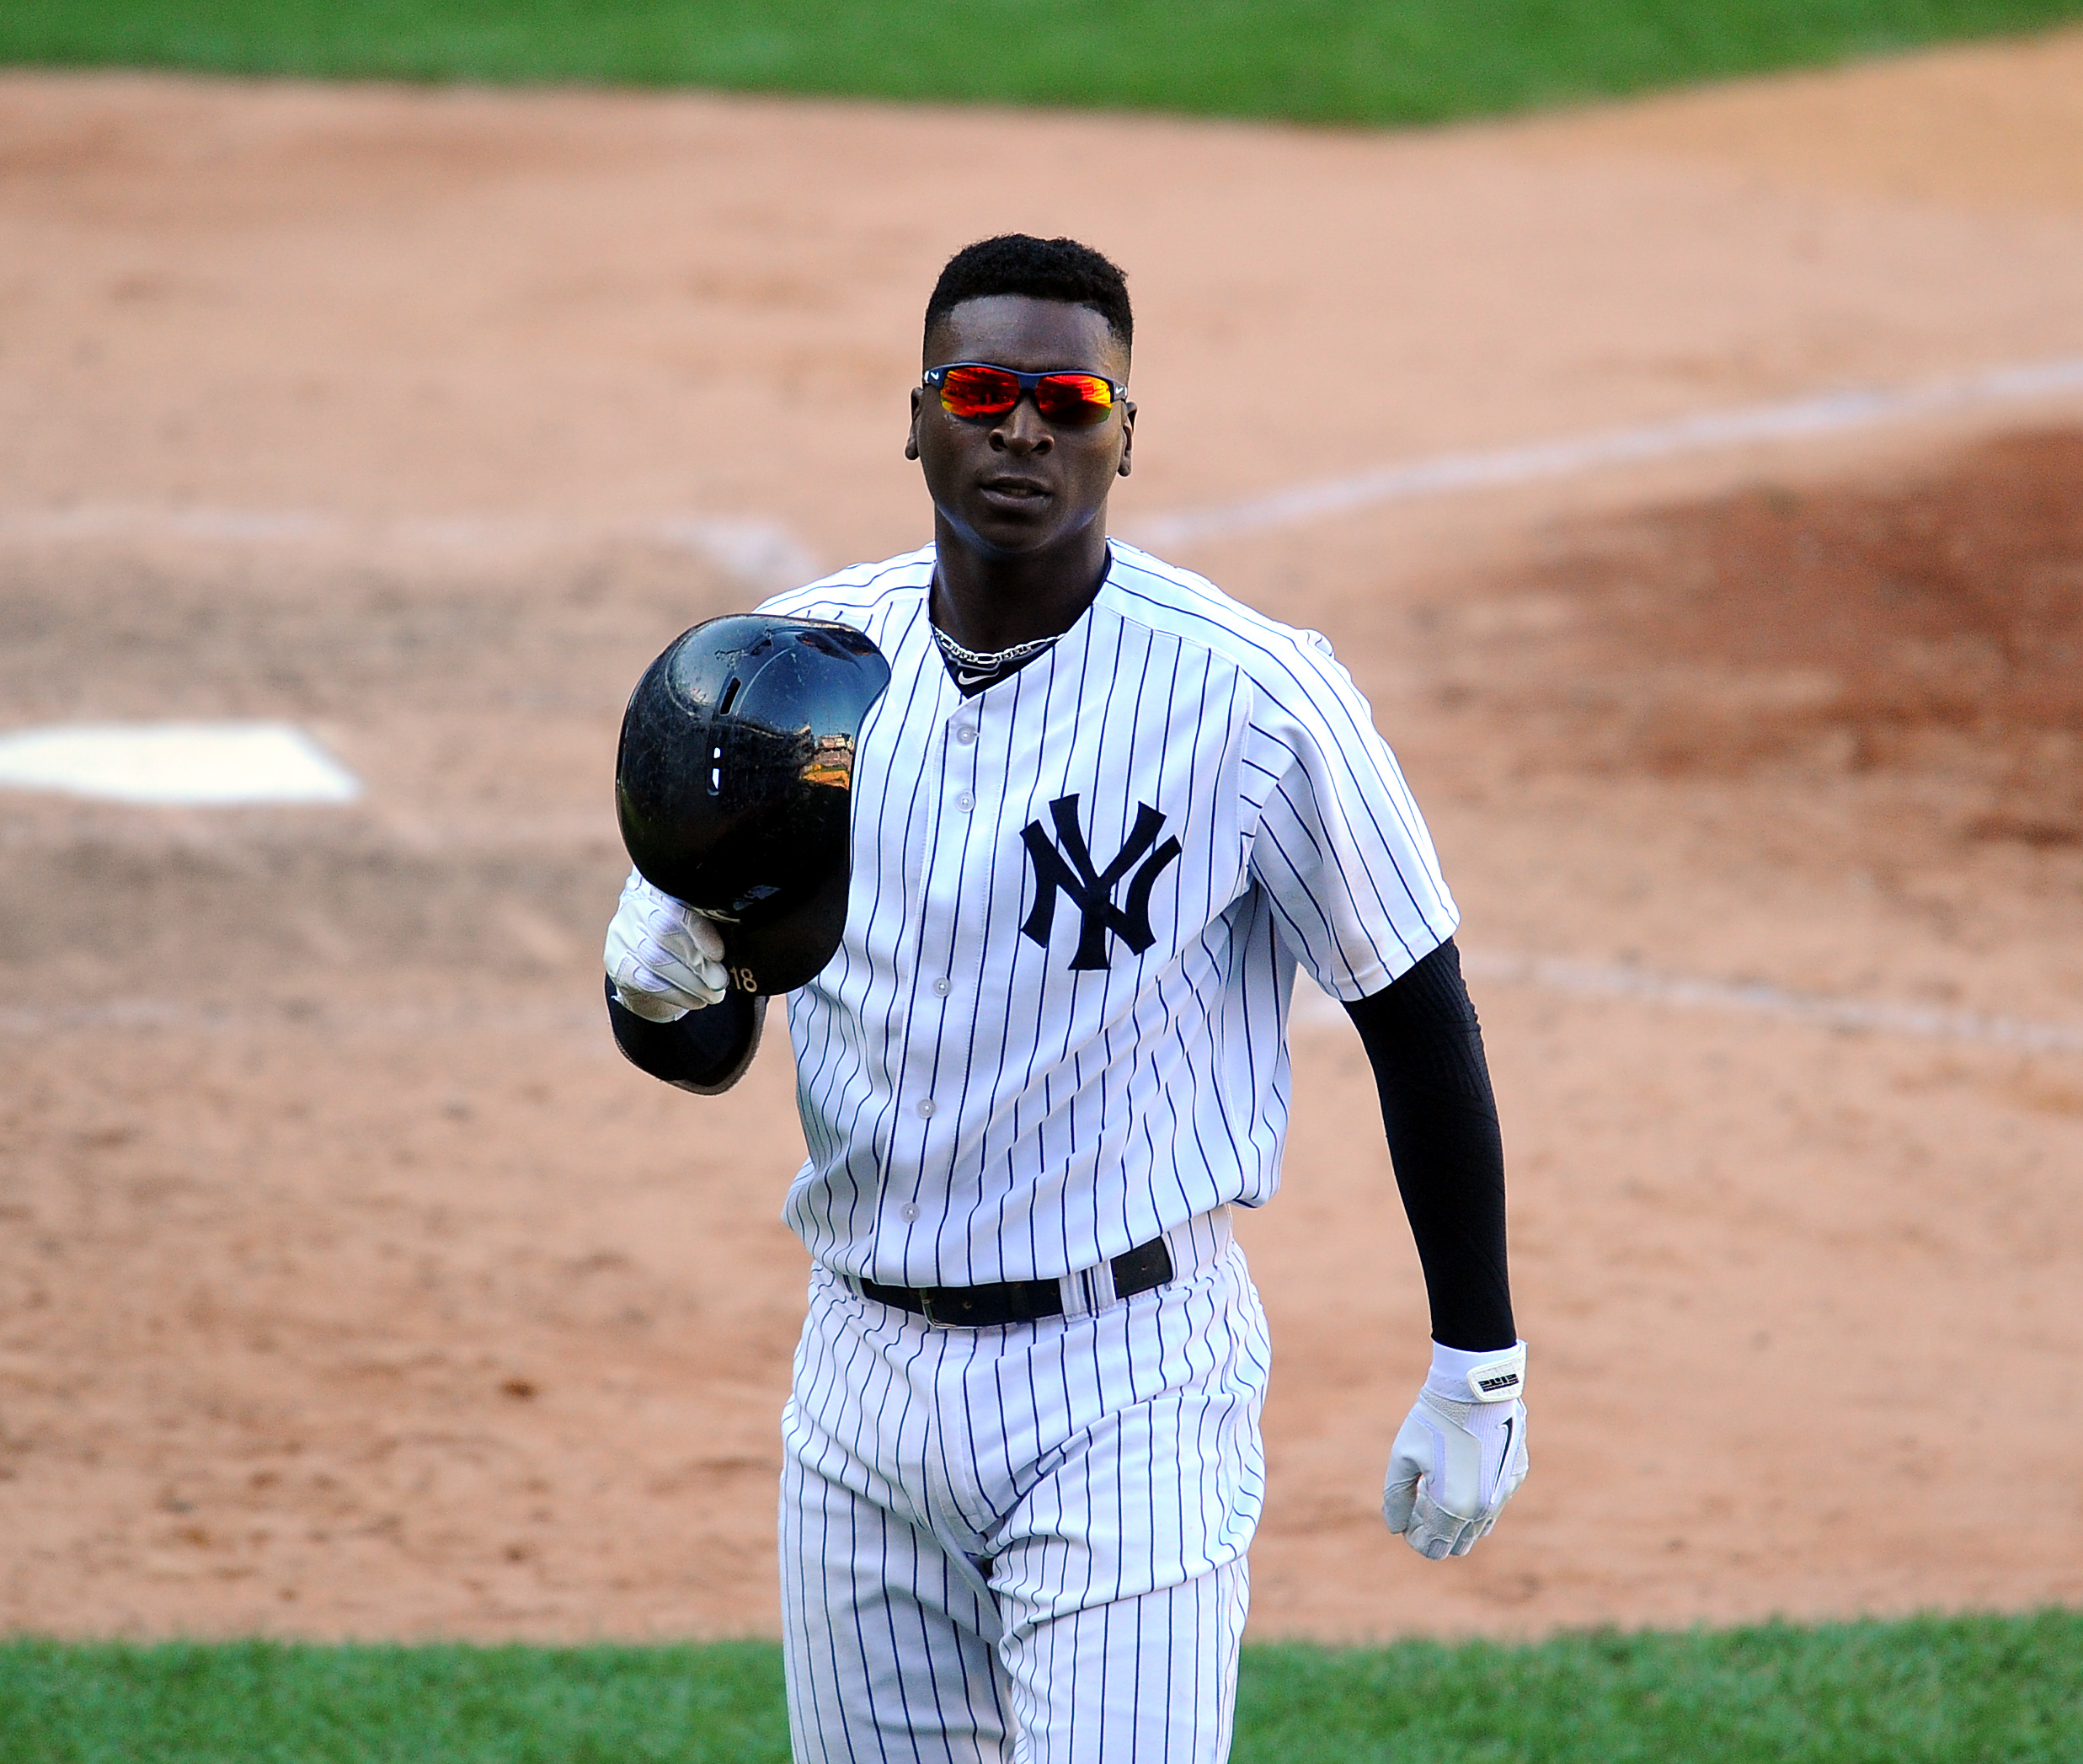 09/05/15 Tampa Bay Rays vs N.Y.Yankess at Yankees Stadium Bronx N.Y.New York Yankees lose 3-2 New York Yankees shortstop Didi Gregorius #18 lines out with bases loaded to end the 8th inning photos by Sportsdaywire